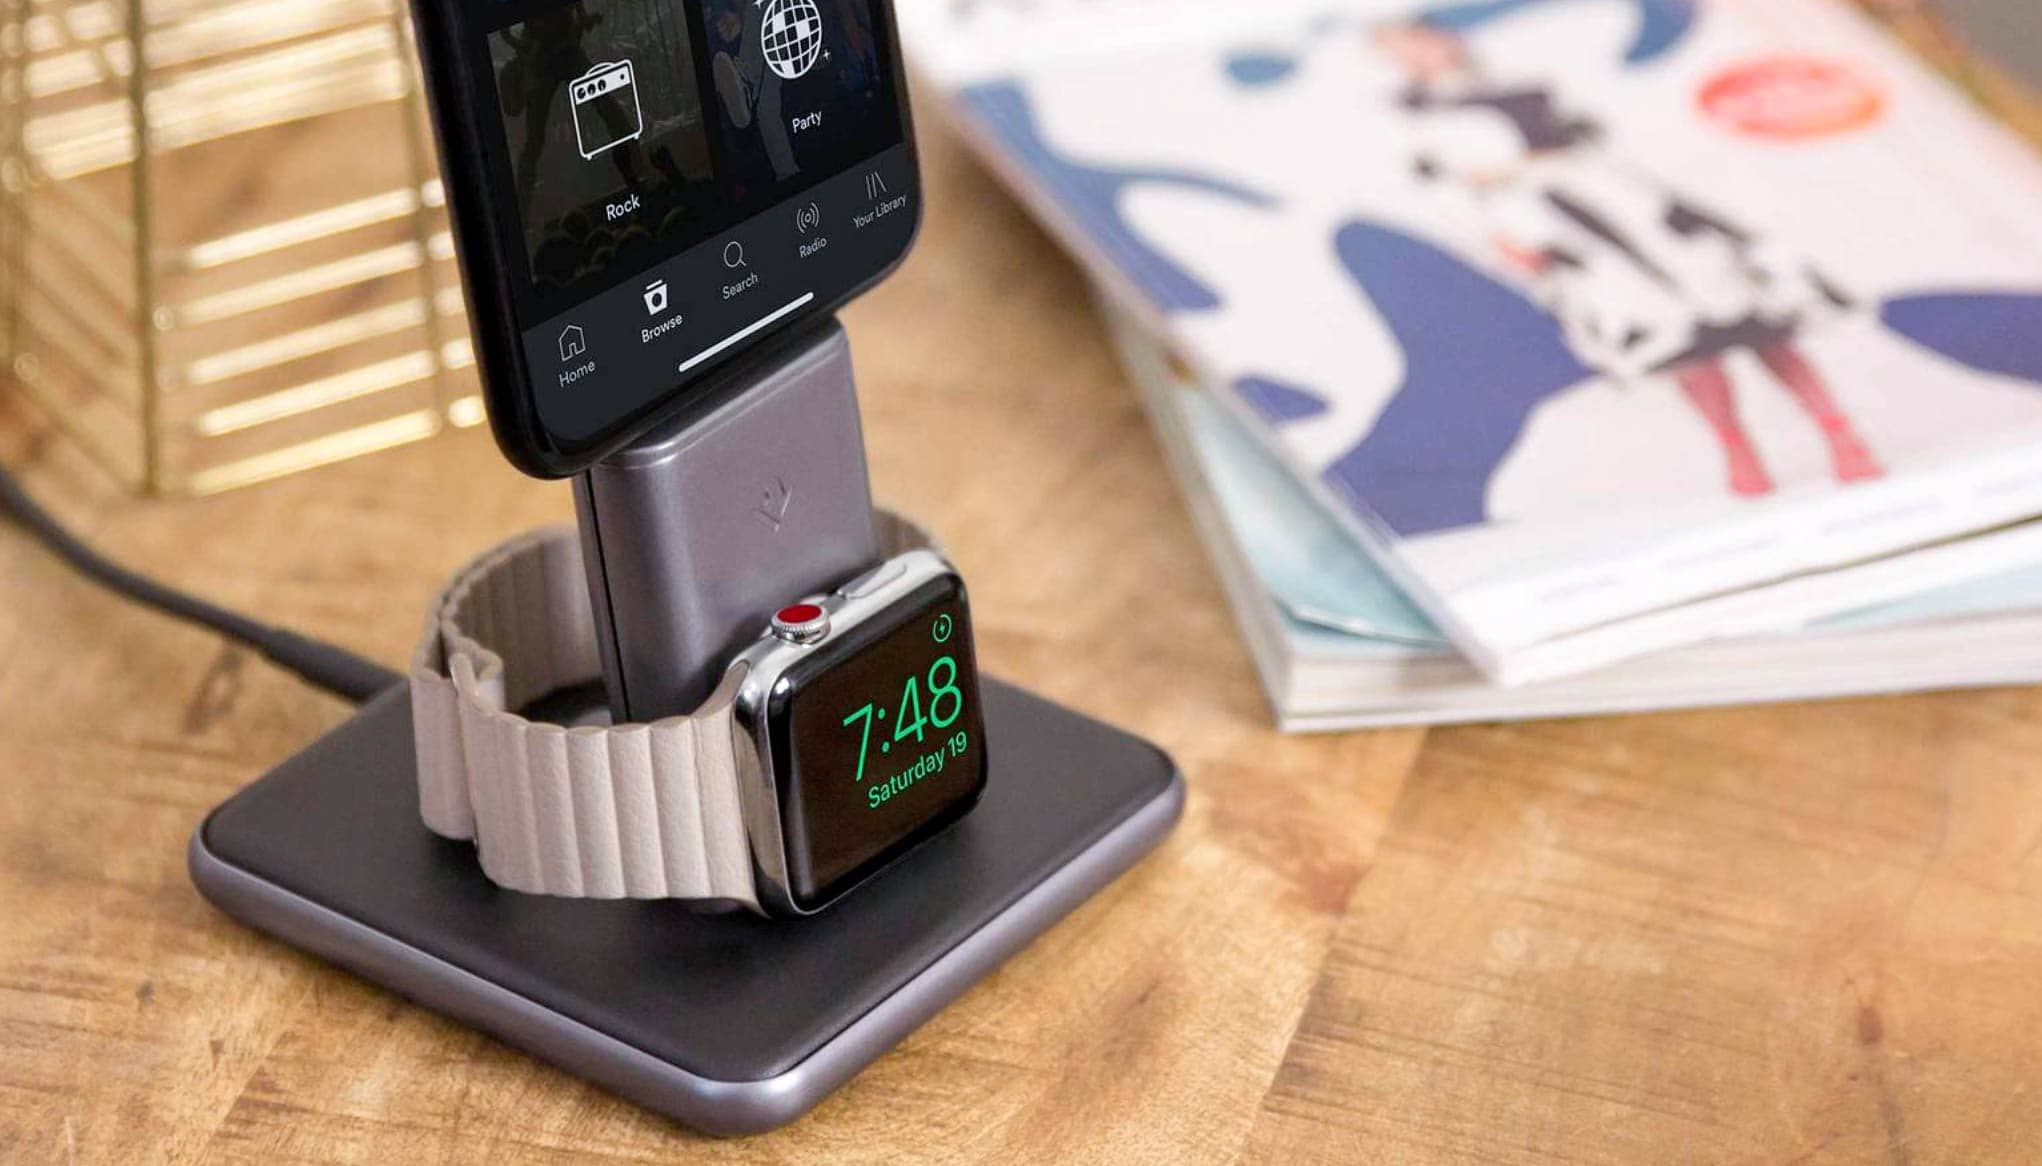 HiRise Duet is the first dual charging stand that powers up Apple Watch in Nightstand mode.